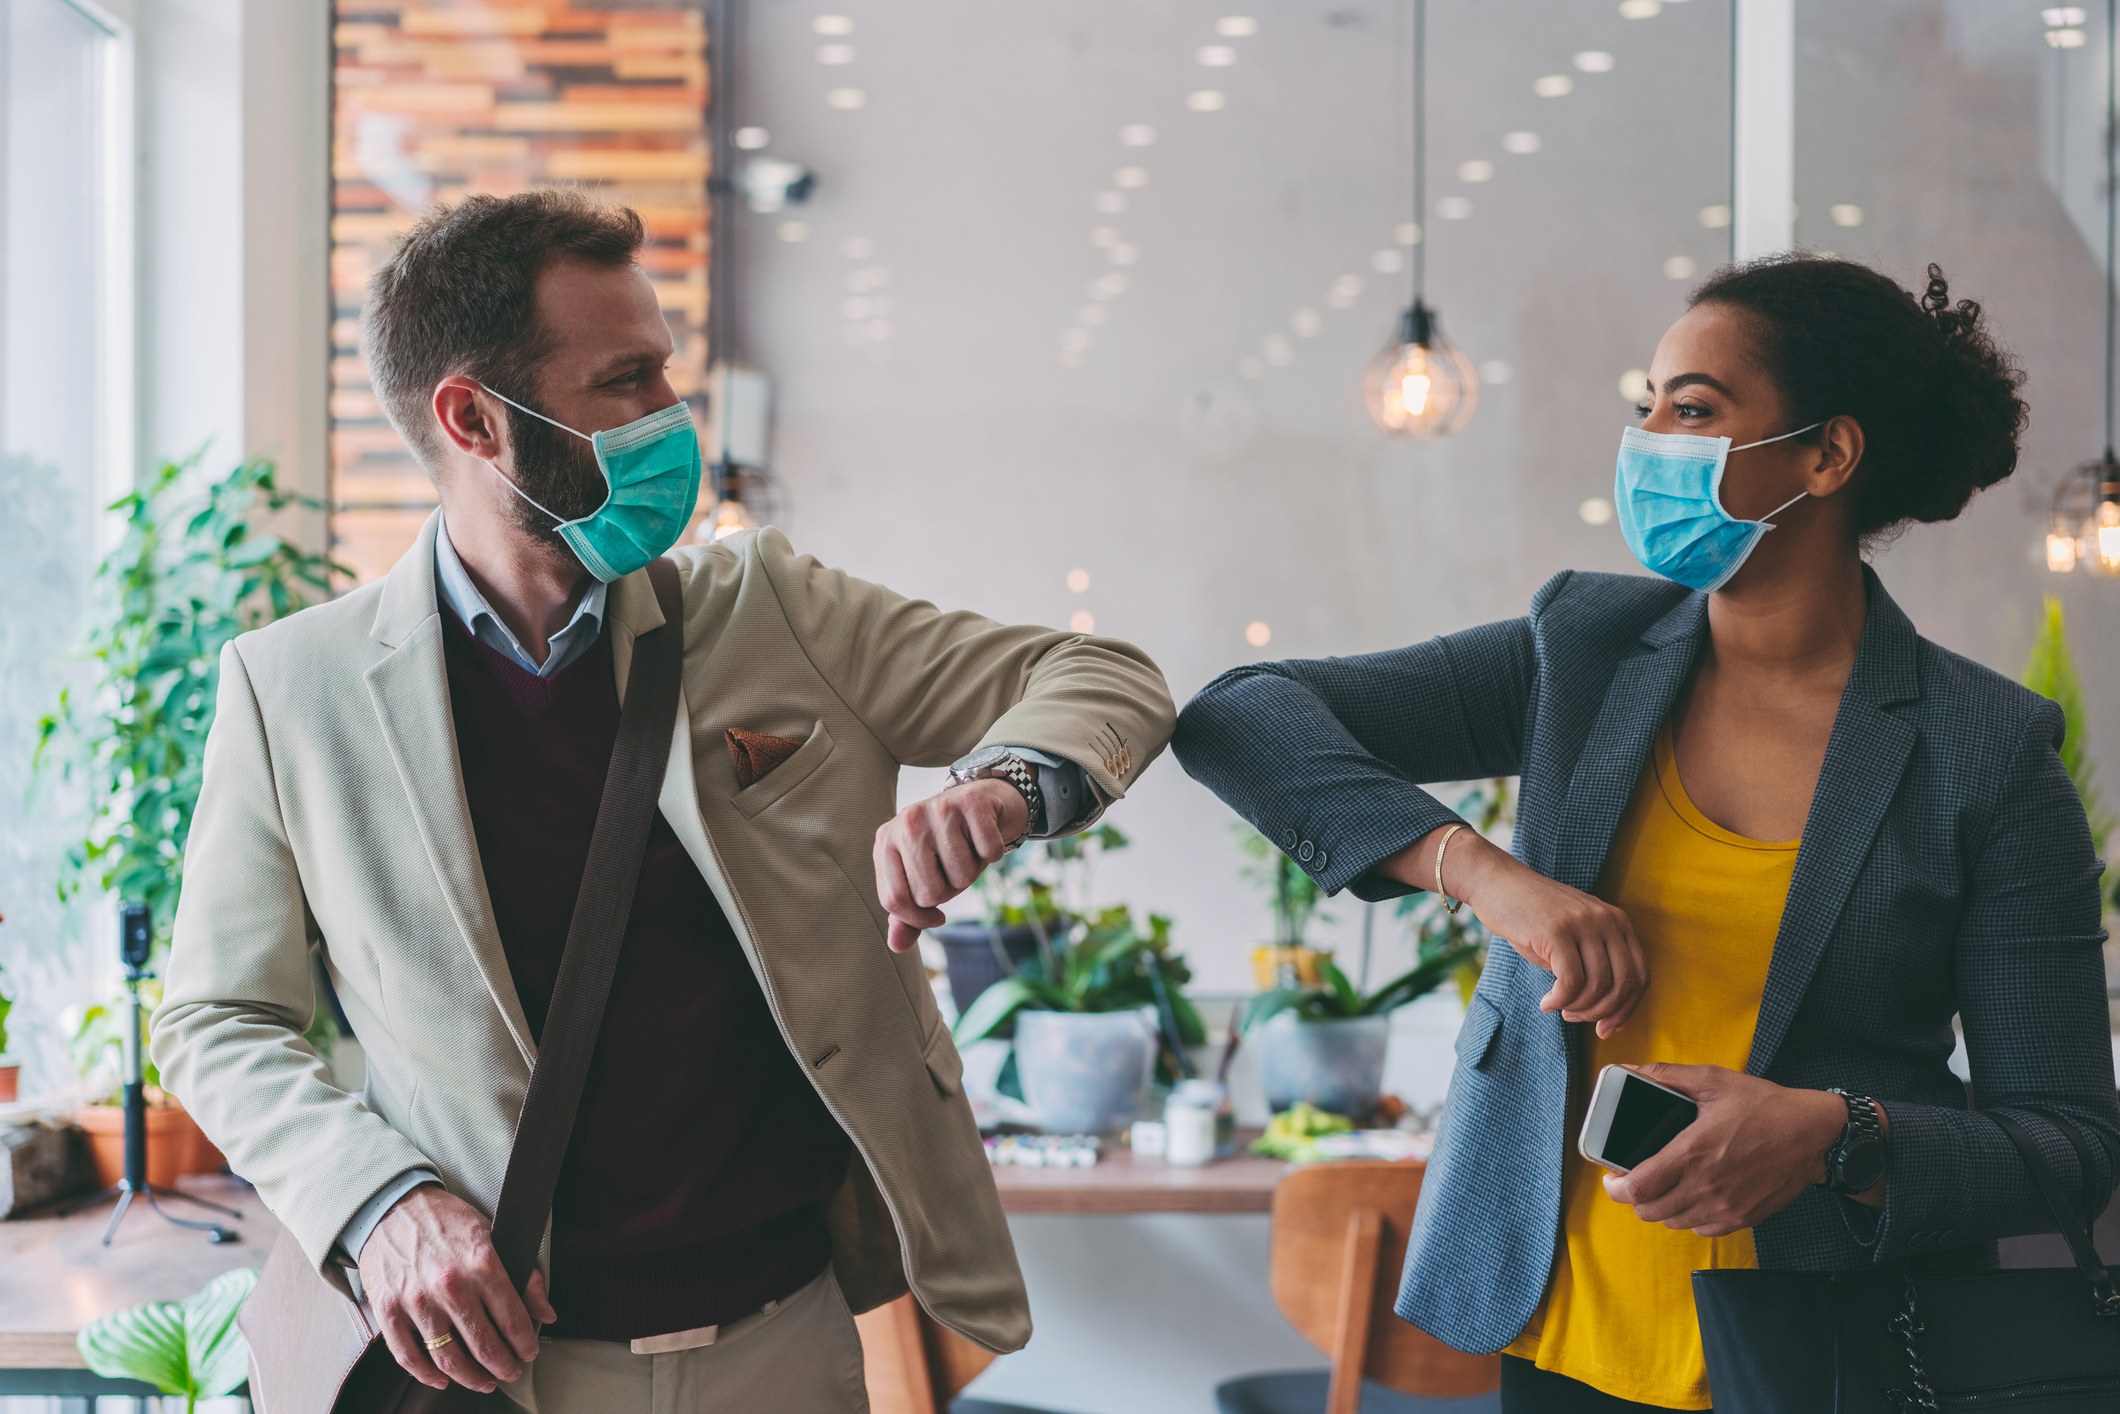 Stock photo of two colleagues in facemasks bumping elbows in place of a high five